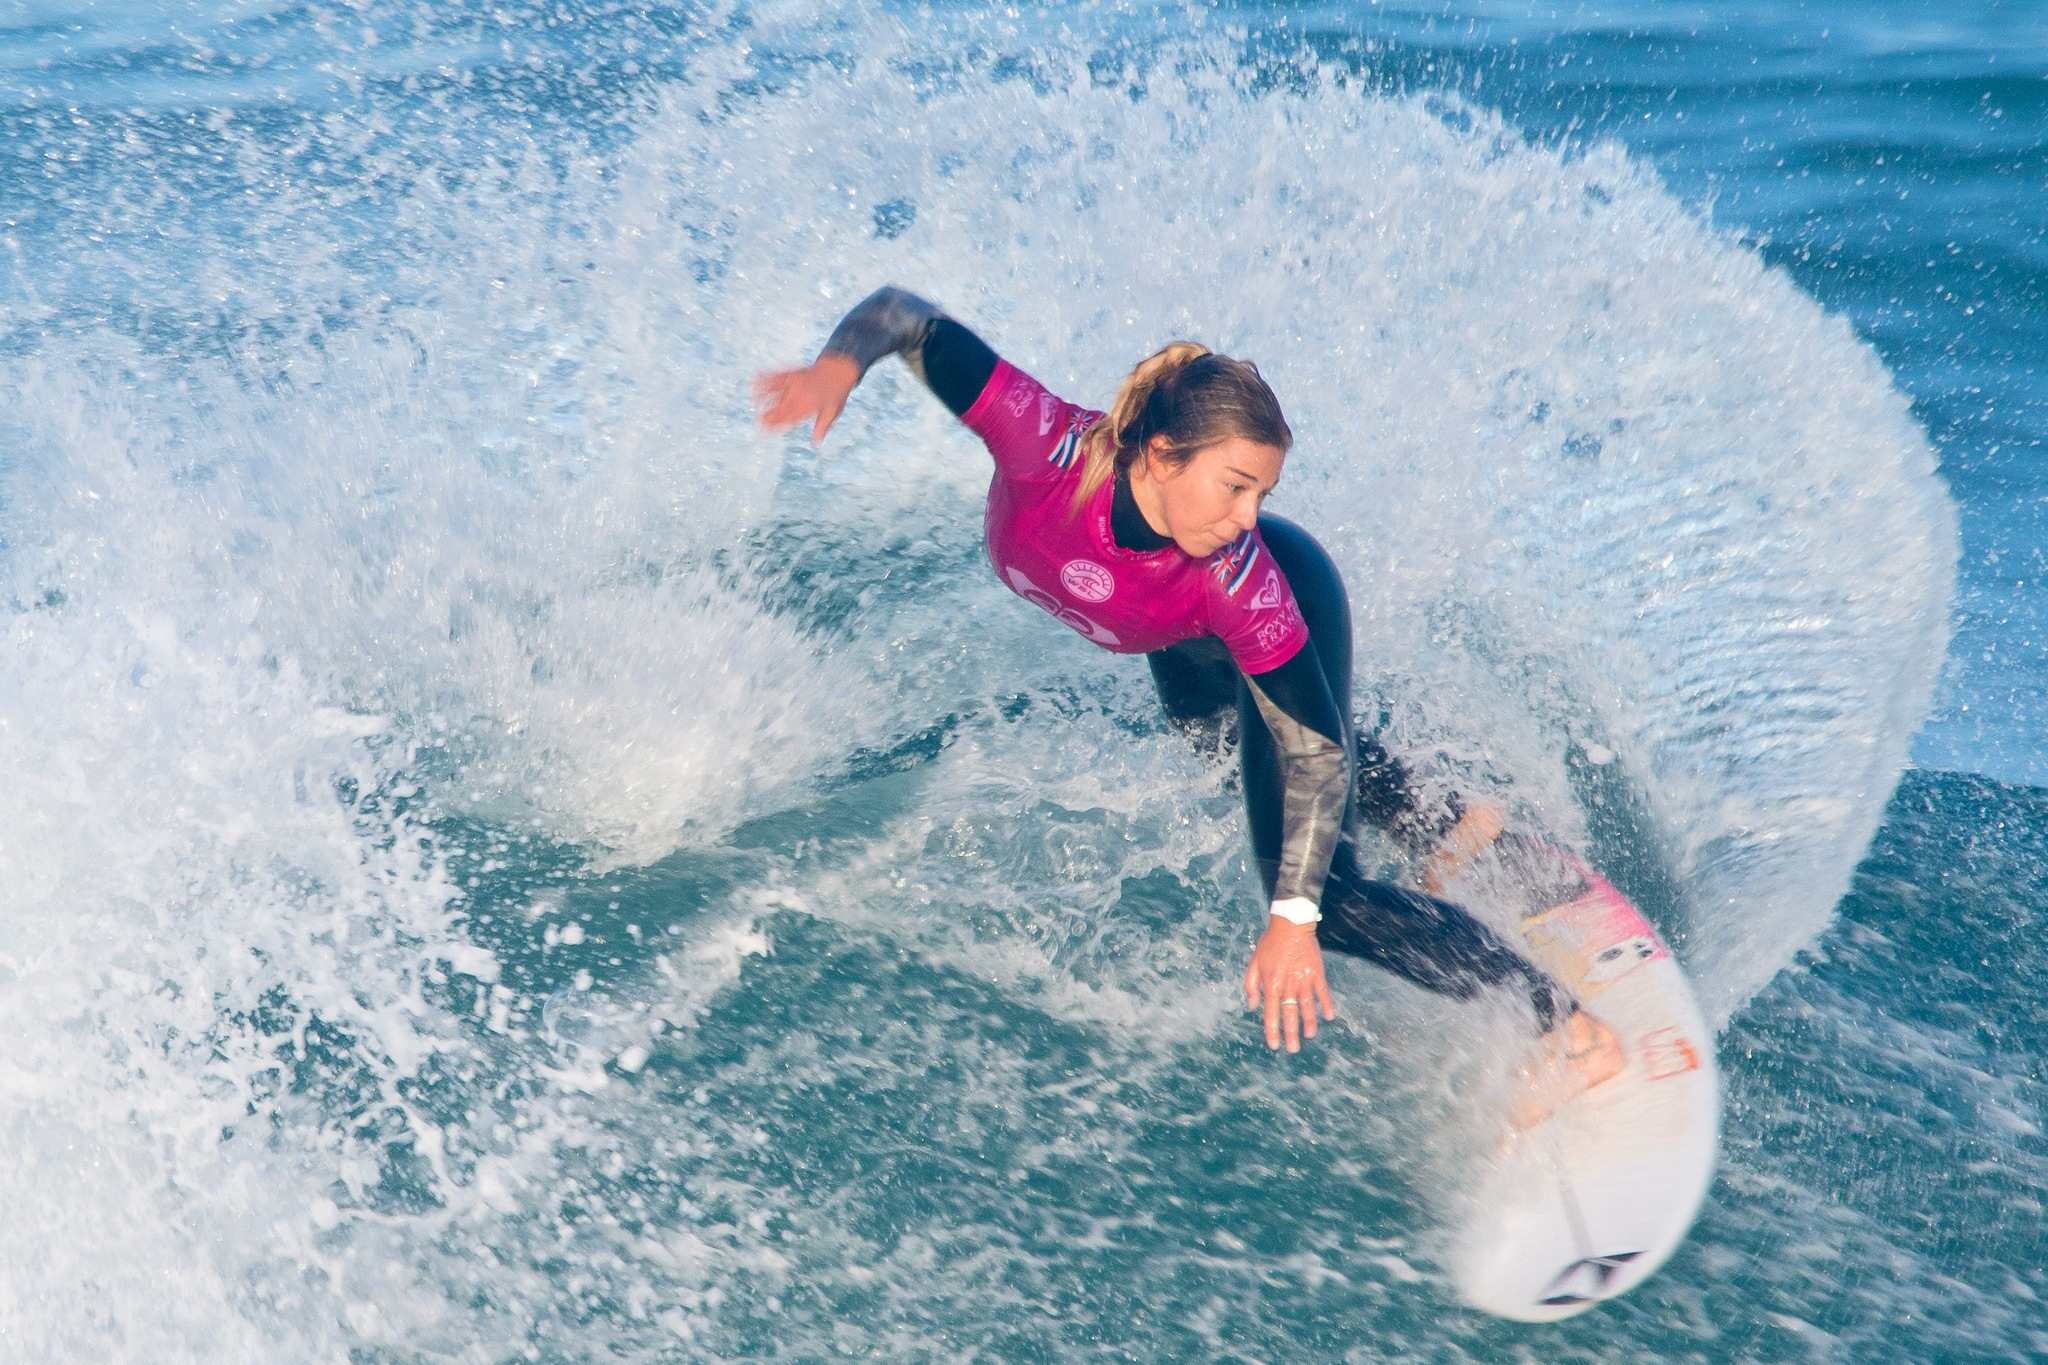 Coco ho at the roxy pro 2018 by PJ Productions